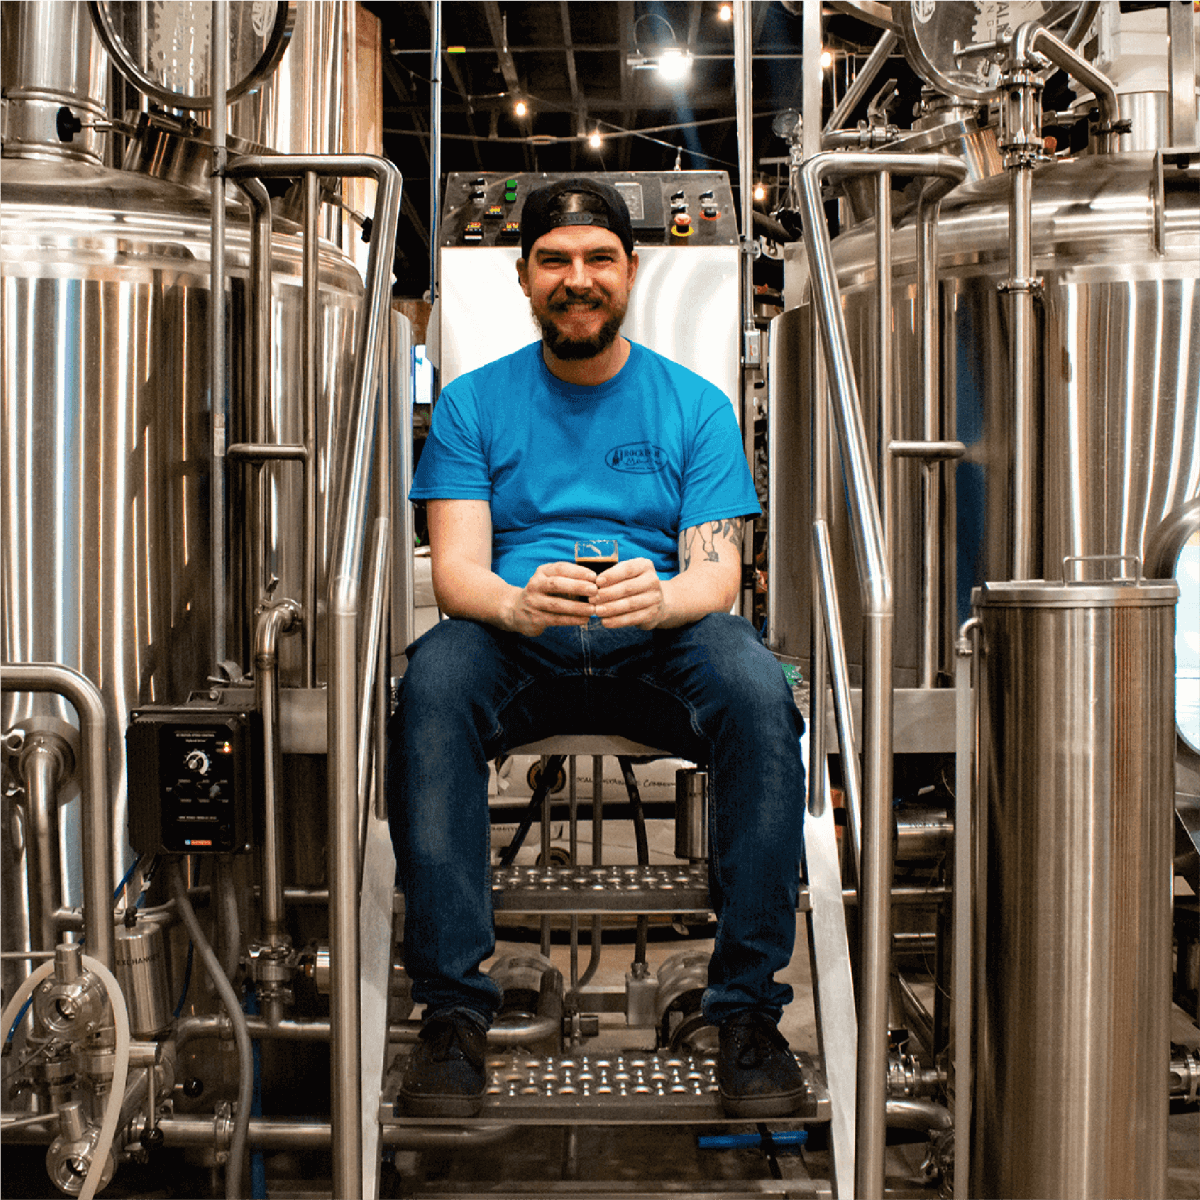 Eric, our Beer-tender sitting between two tanks with a huge grin on his face